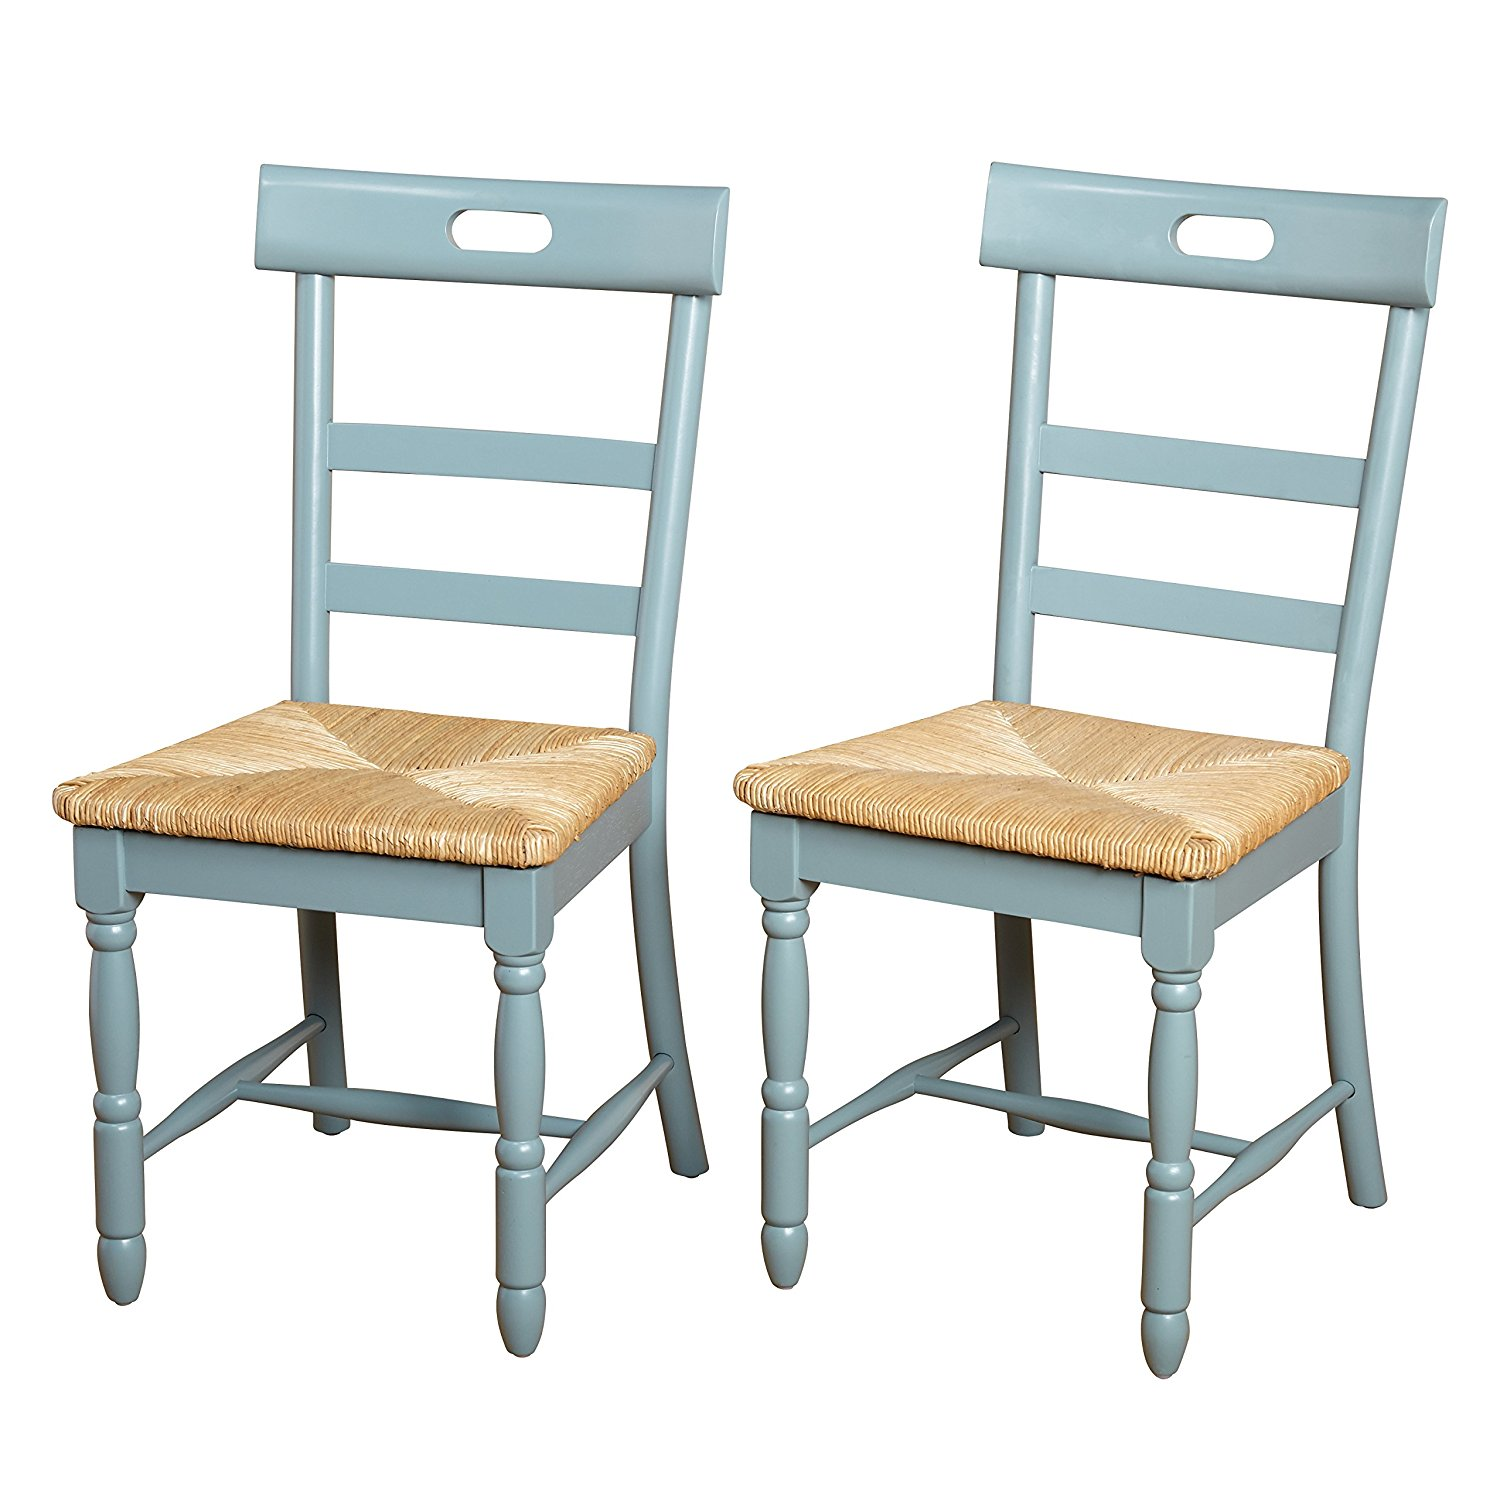 Target Marketing Systems Briana Series Contemporary Country Style Woven Wooden Crafted Dining Chairs, Blue, Set of 2